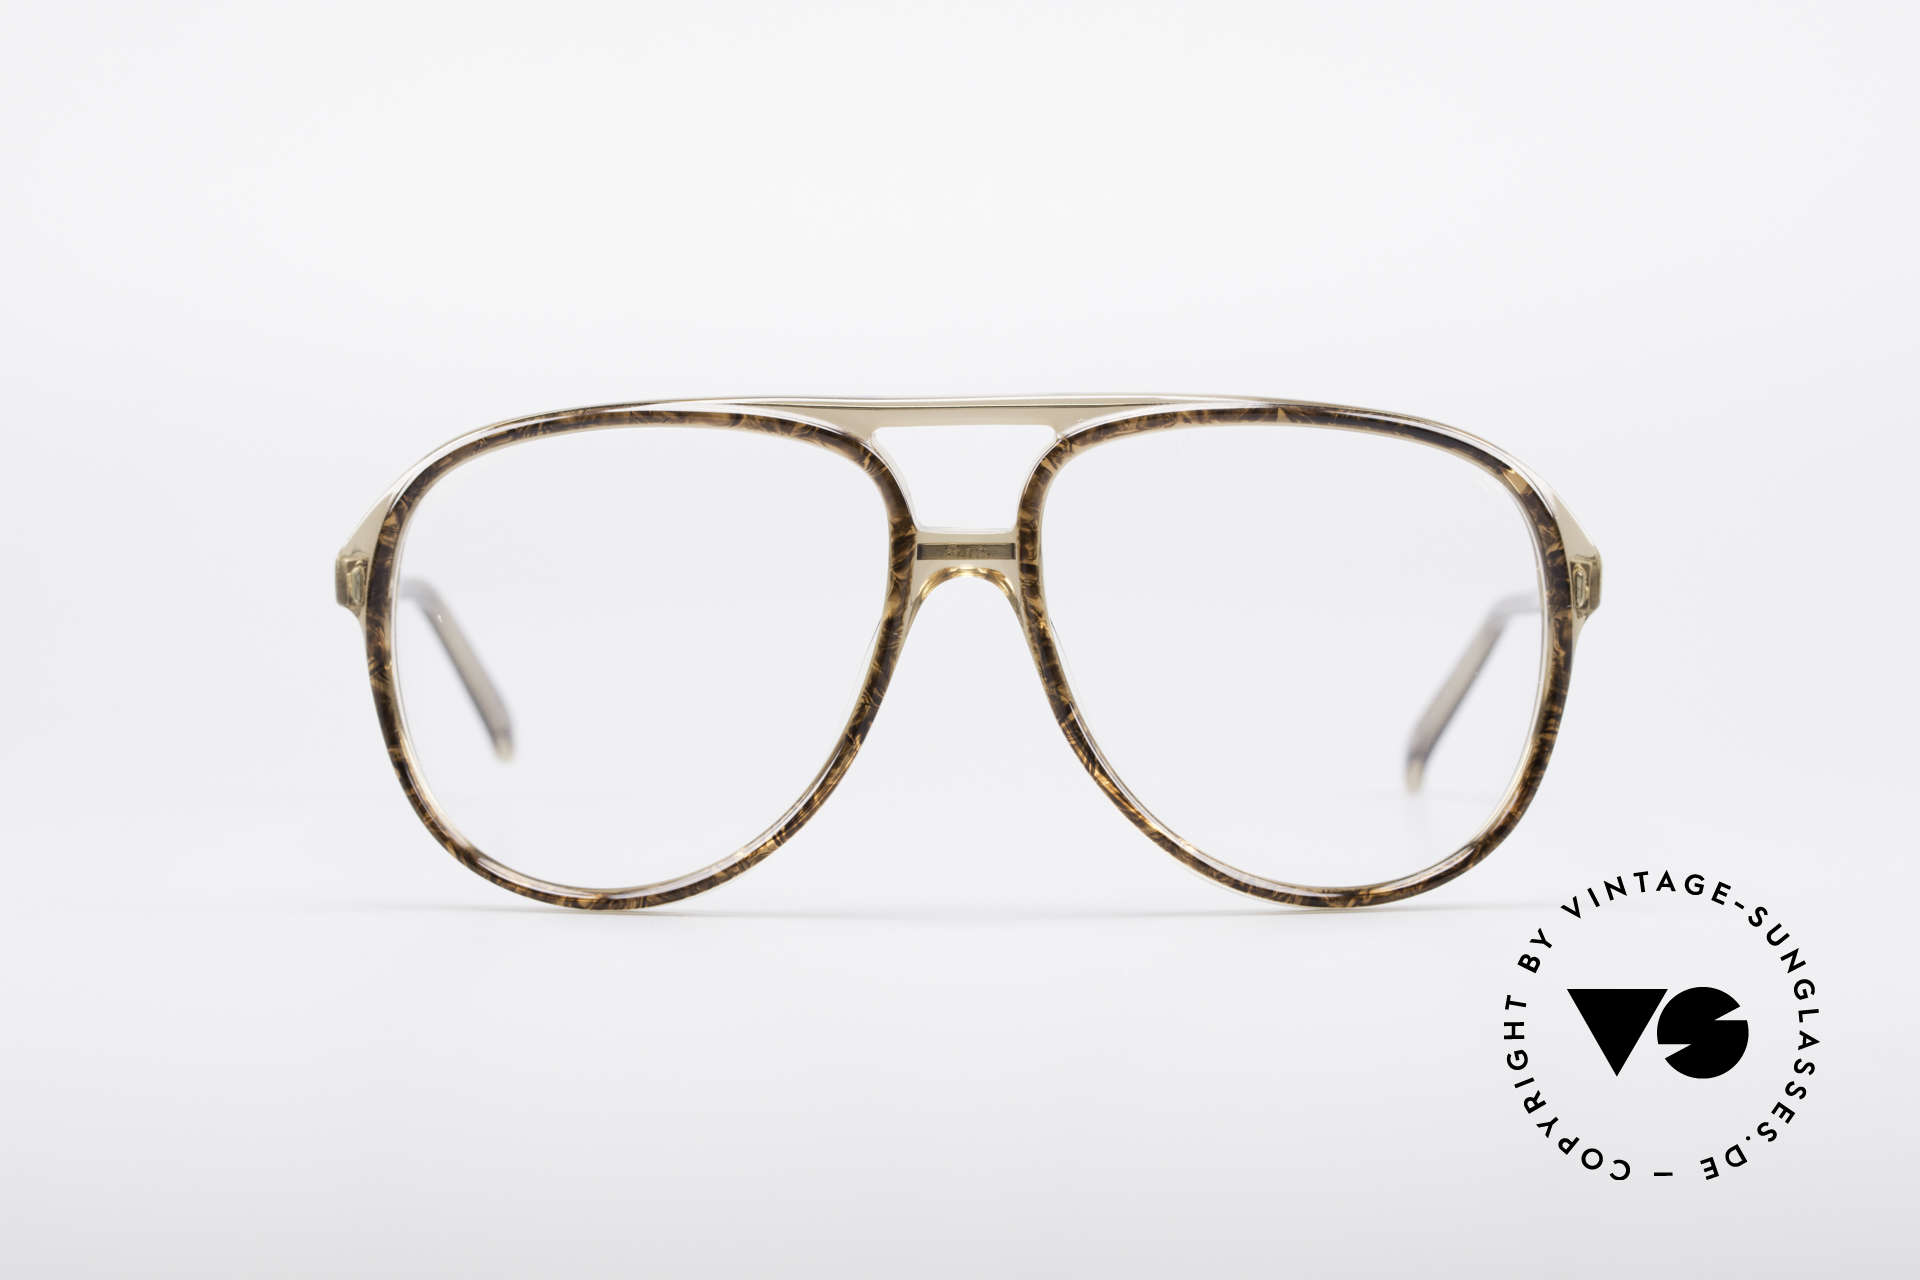 767e38aad11d0 You may also like these glasses. Ferrari F41 80 s Vintage Sunglasses Men  Details